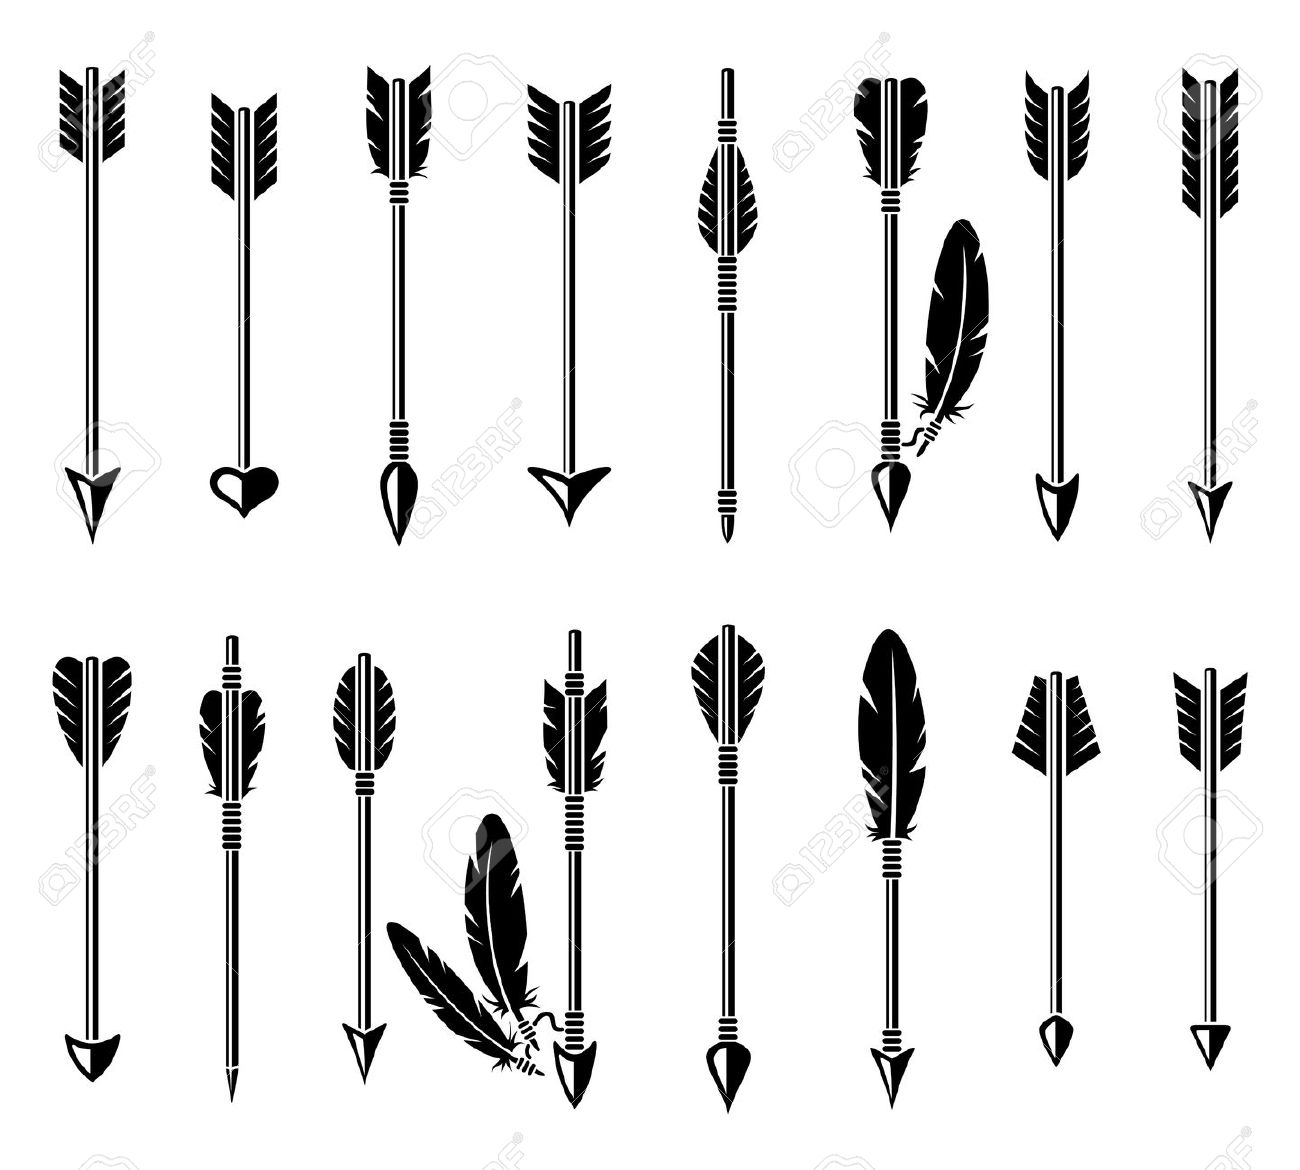 Feather arrow clipart 7 » Clipart Station.